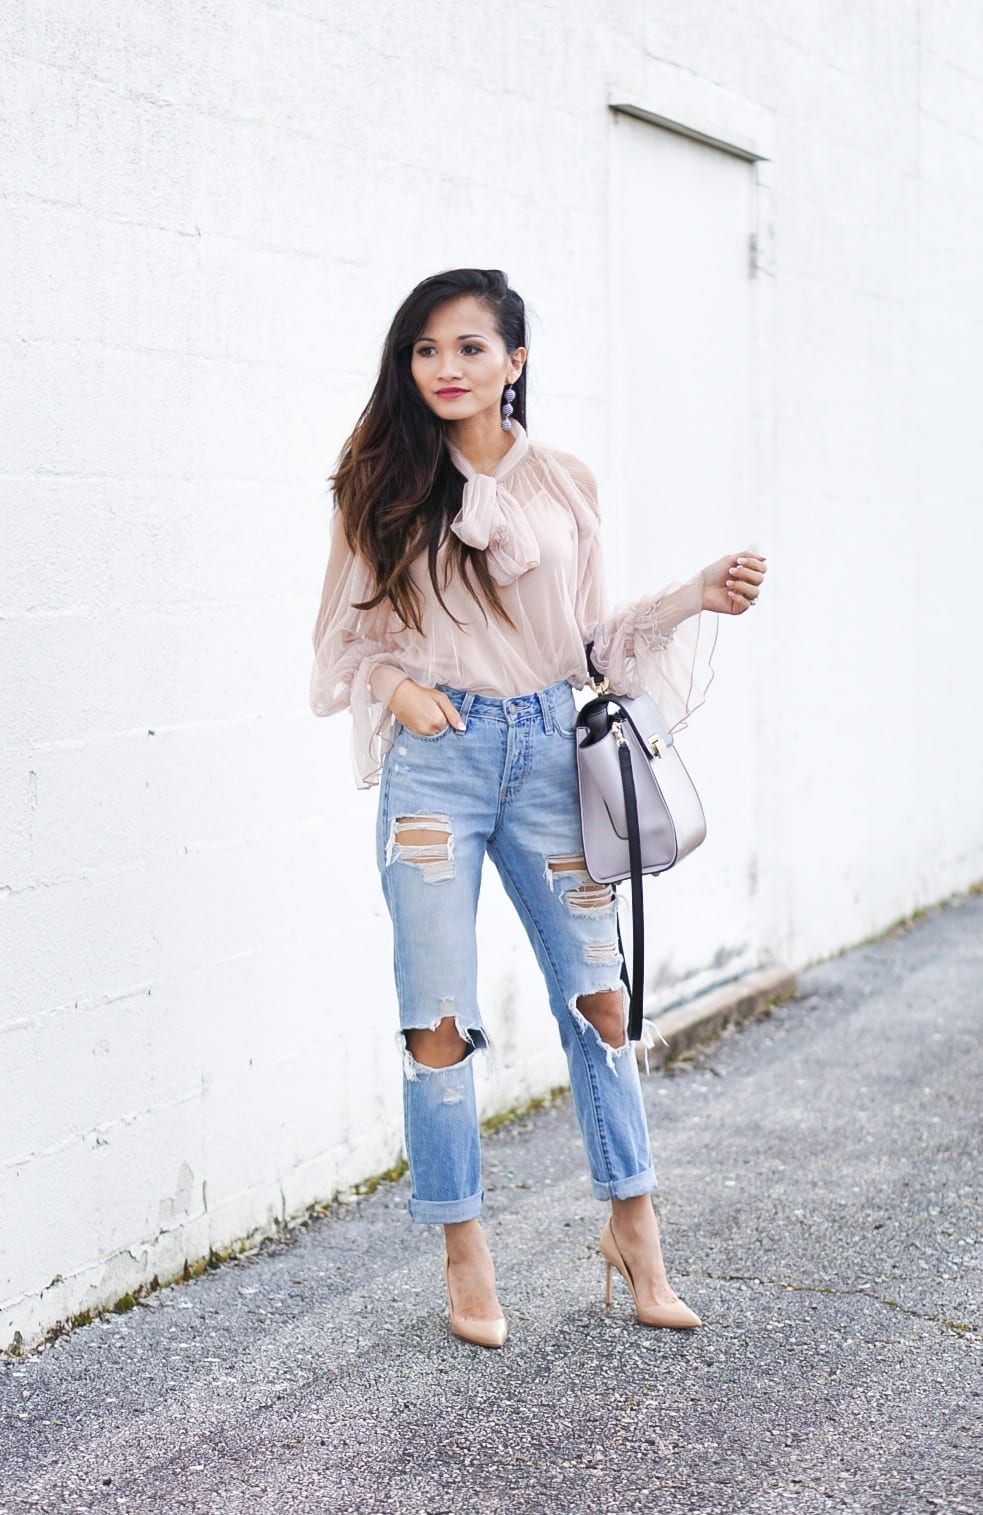 mesh bow top, ripped jeans, Zac Zac Posen bag, distressed jeans, Manolo blanik, nude heels, nude pumps